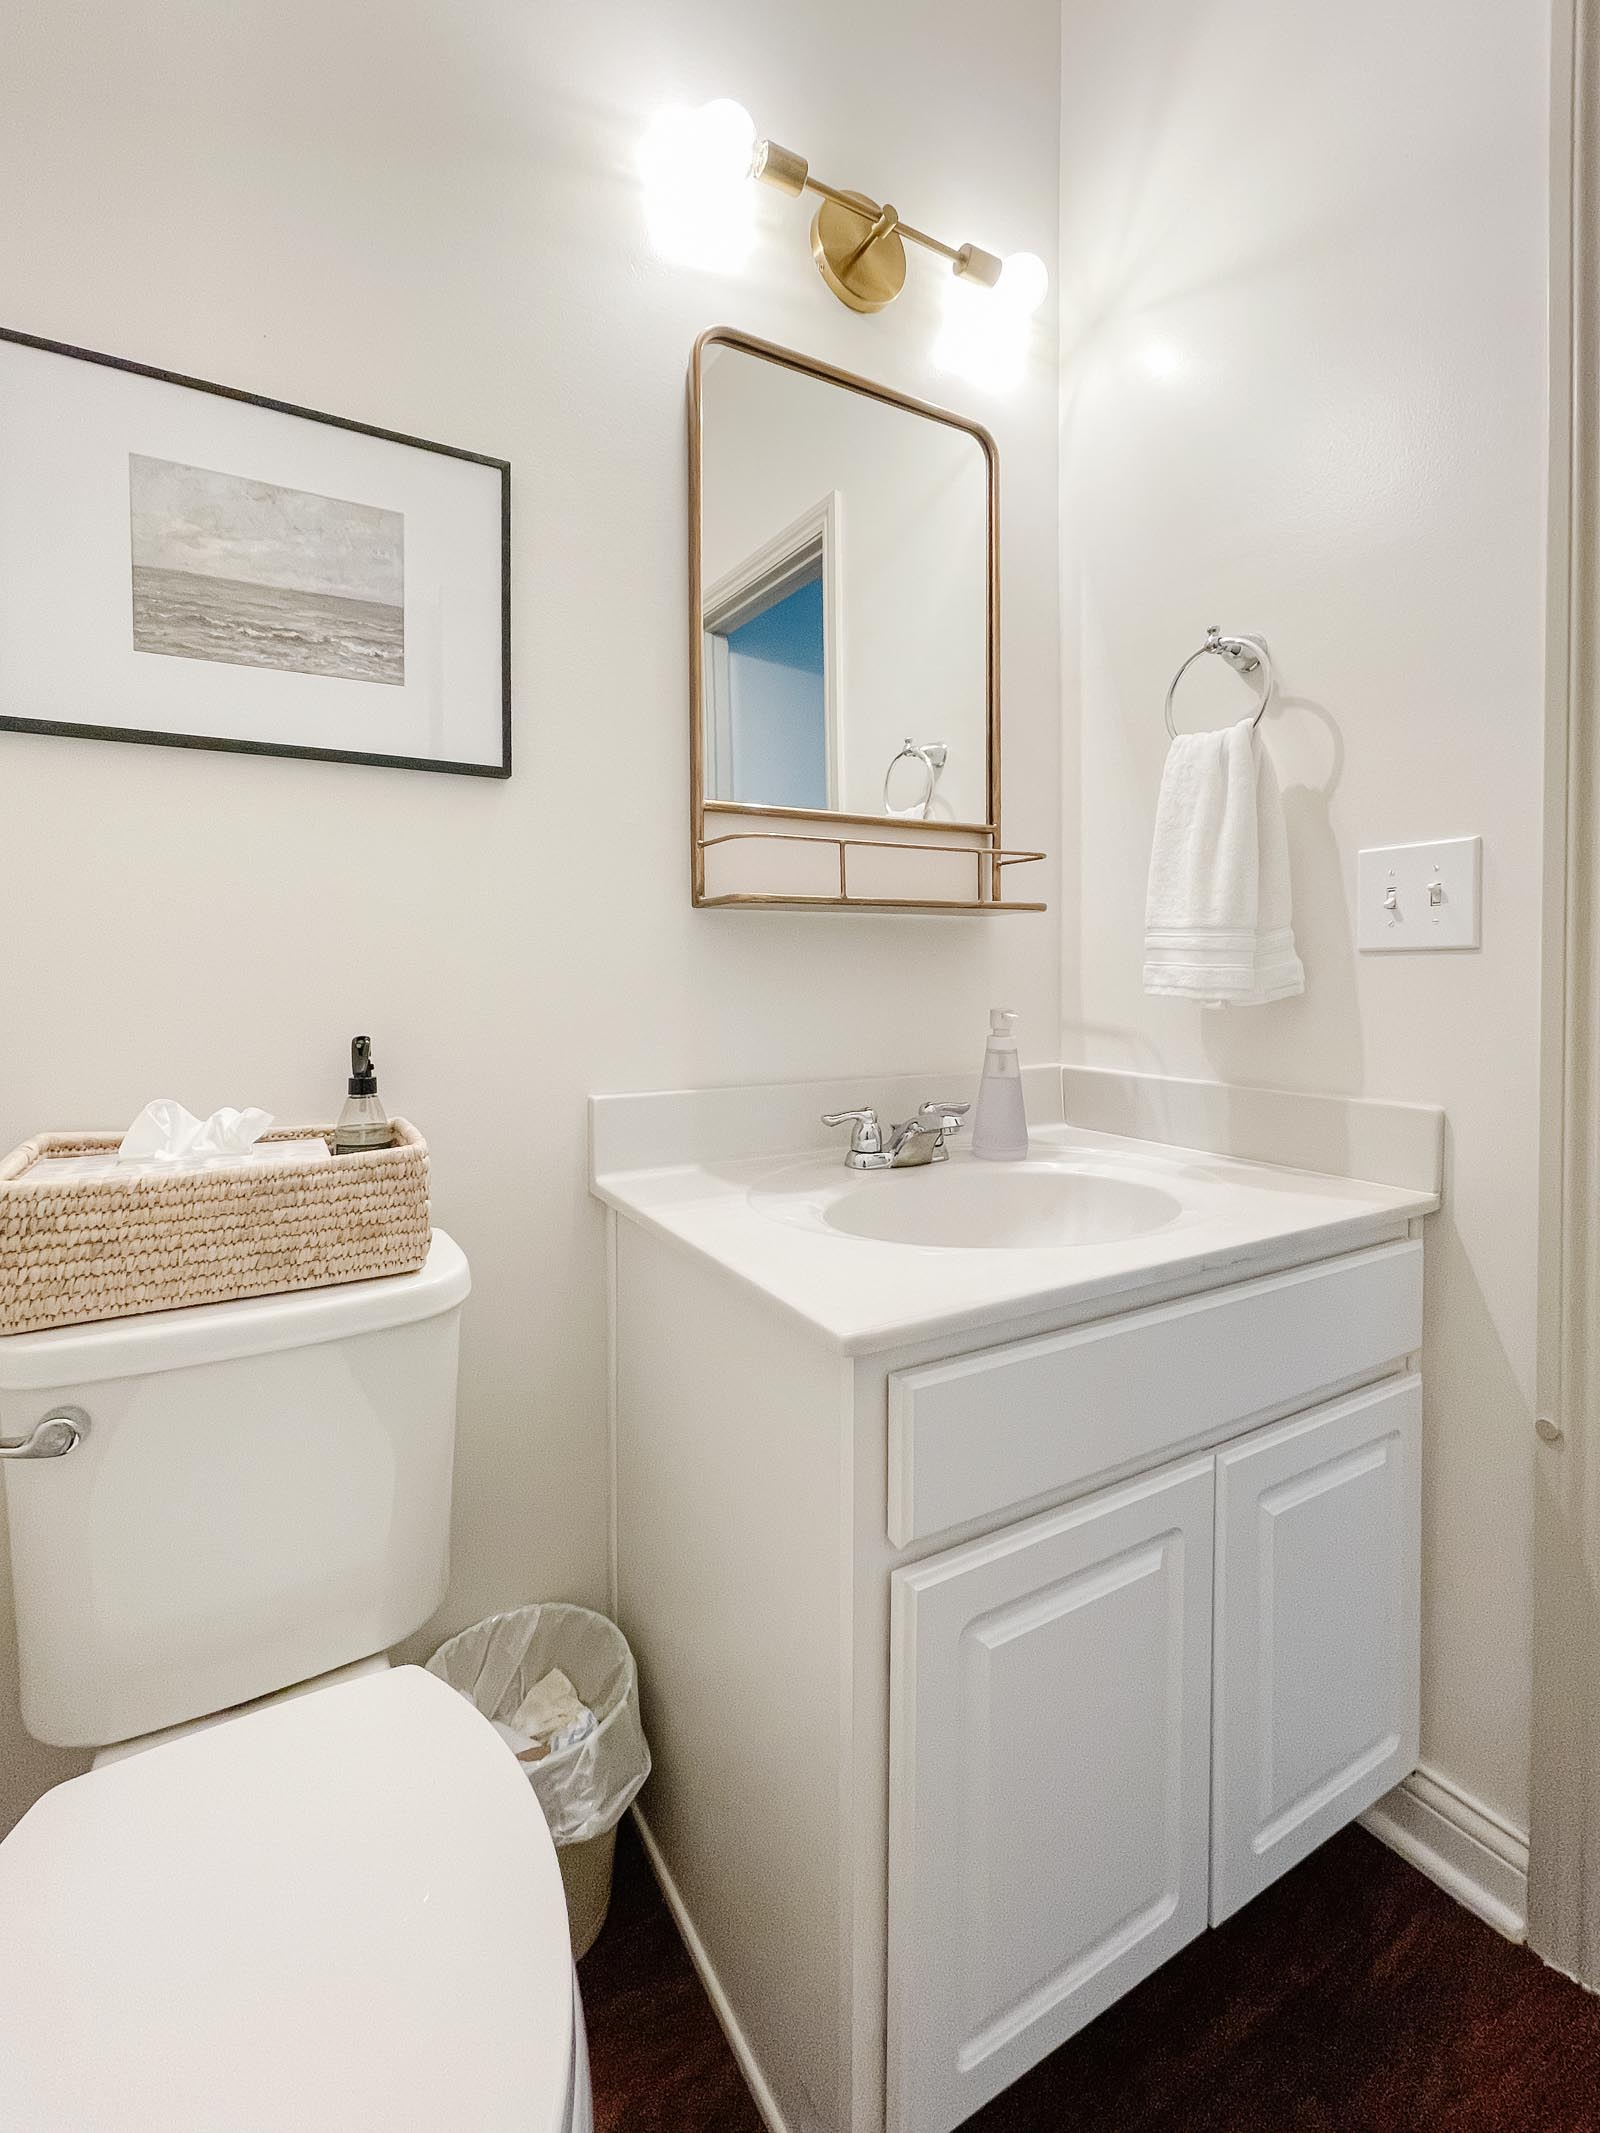 Powder Room Before - pharmacy mirror, modern brass light fixture, white cabinetry and toilet